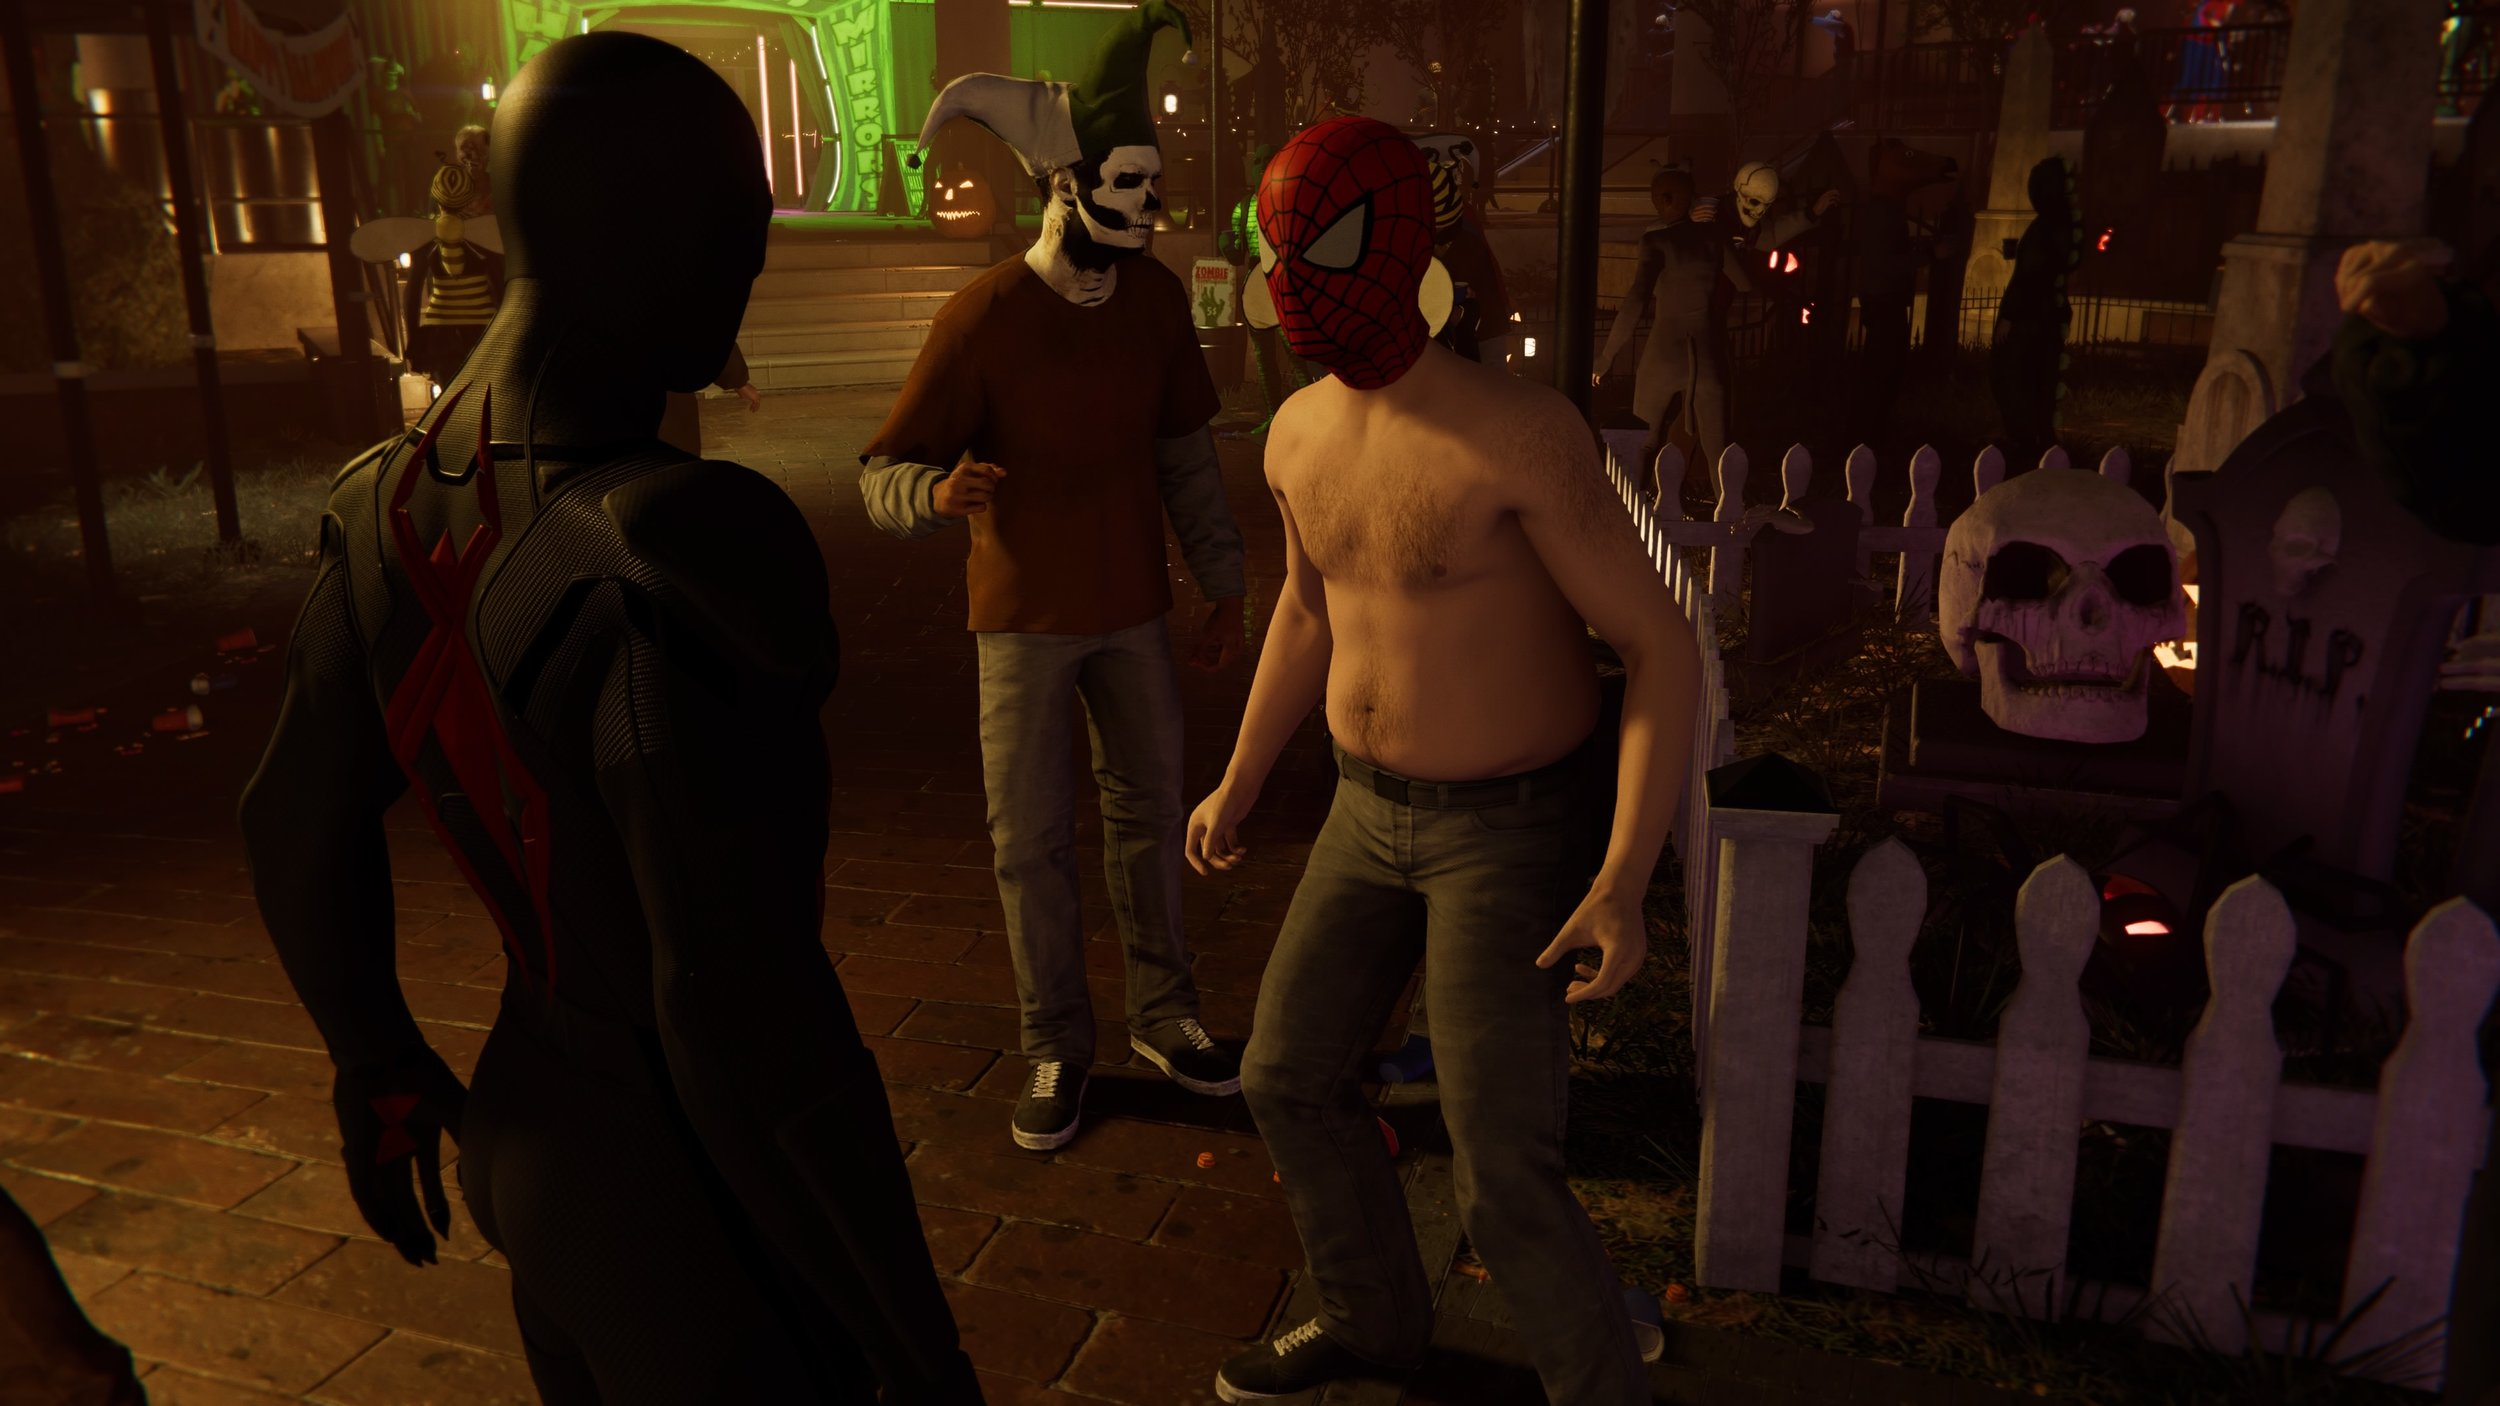 Best Easter egg in the game is Shirtless Spider-Man! Shout out Greg Miller!